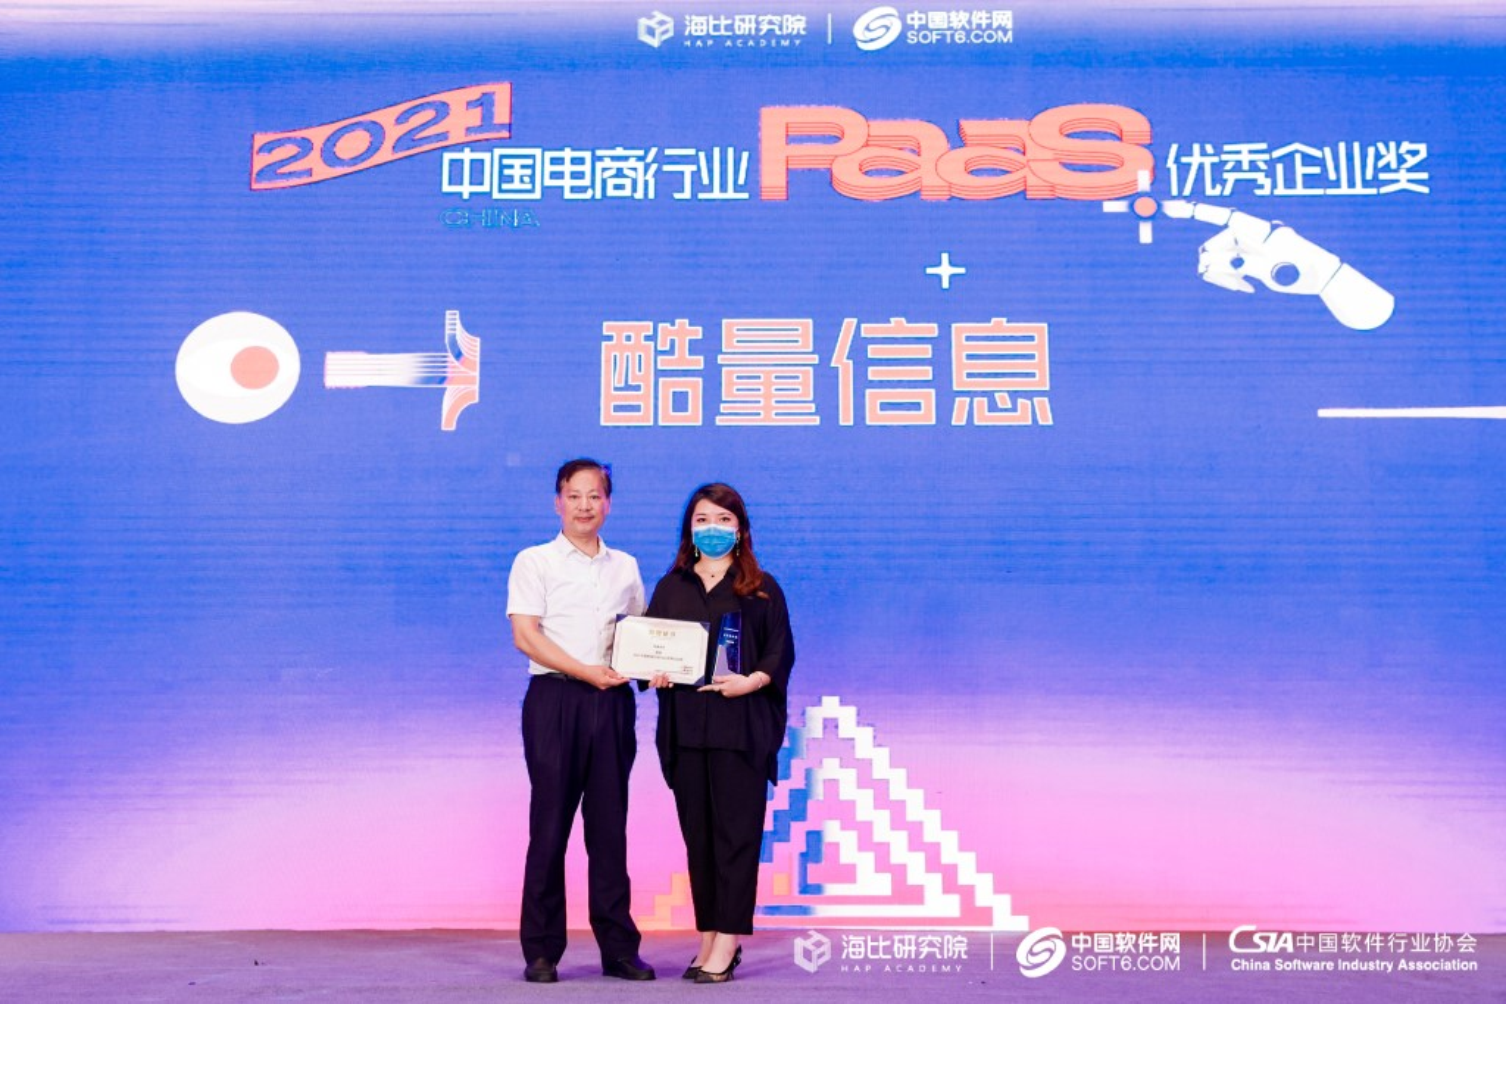 Representative Zhang Jiaying of DotC United Group Strategy Department accepted the award